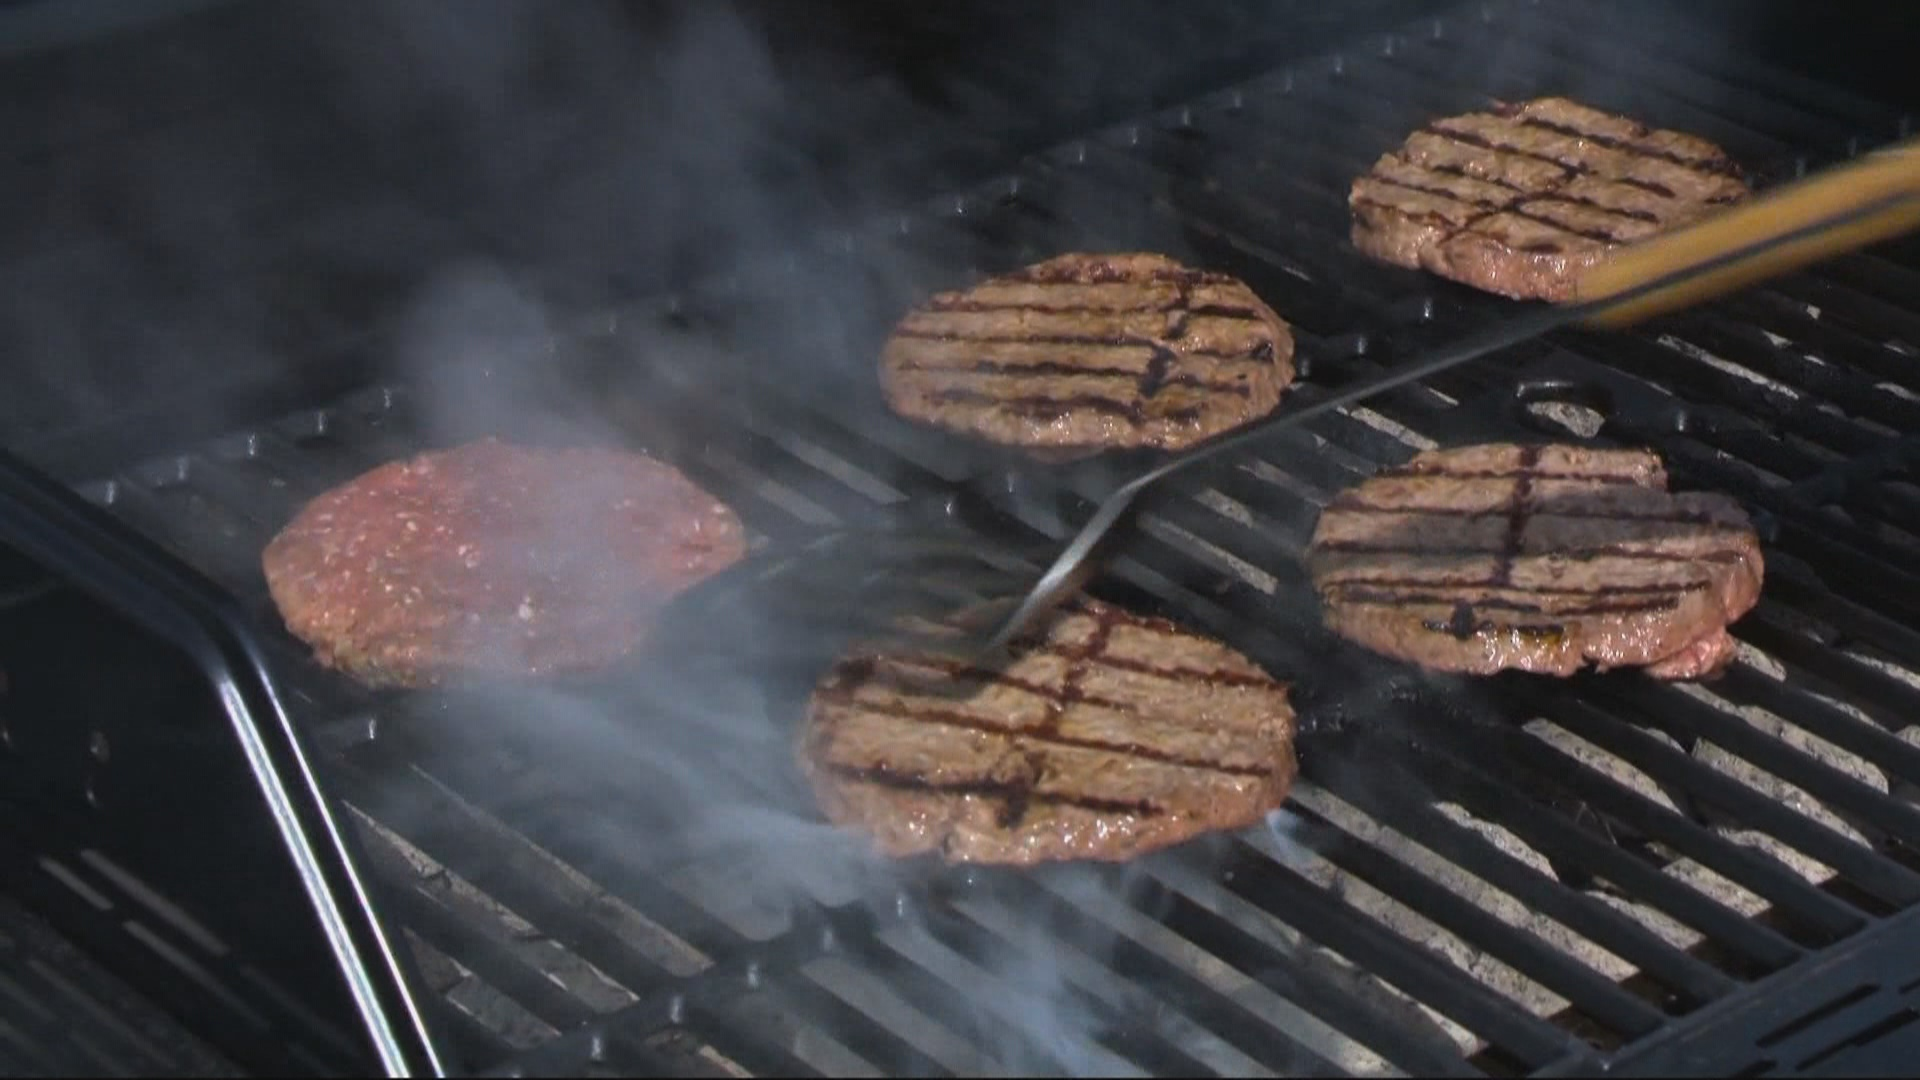 Consumer Reports Hybrid Gas Charcoal Grills,Stainless Steel Vs Nonstick Pressure Cooker